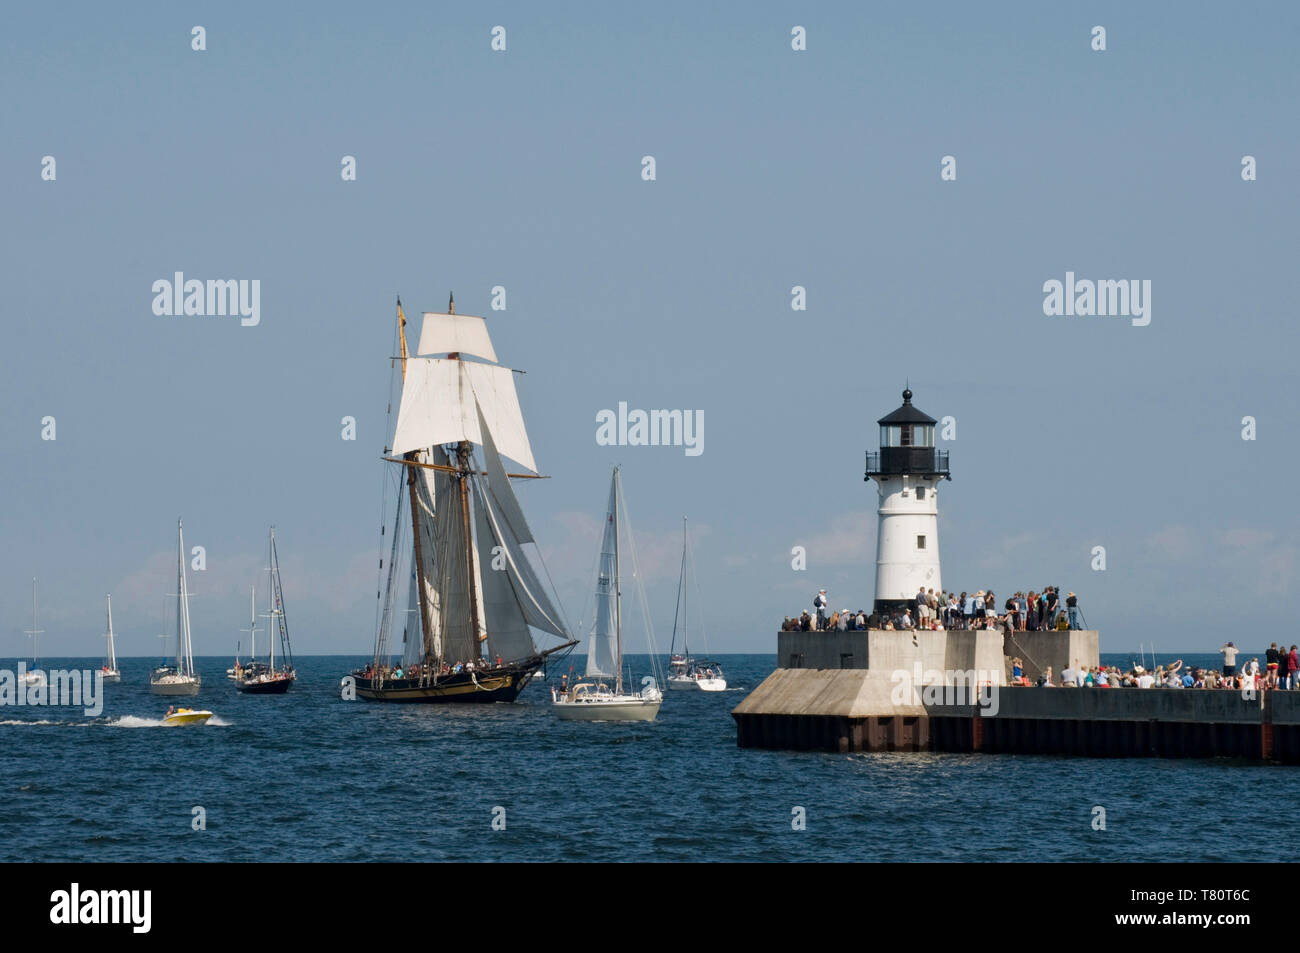 Duluth, Minnesota. Spectators watch as one of three tall ships enters the port of Duluth  to be part of the Duluth Maritime Festival. The ships are a  - Stock Image